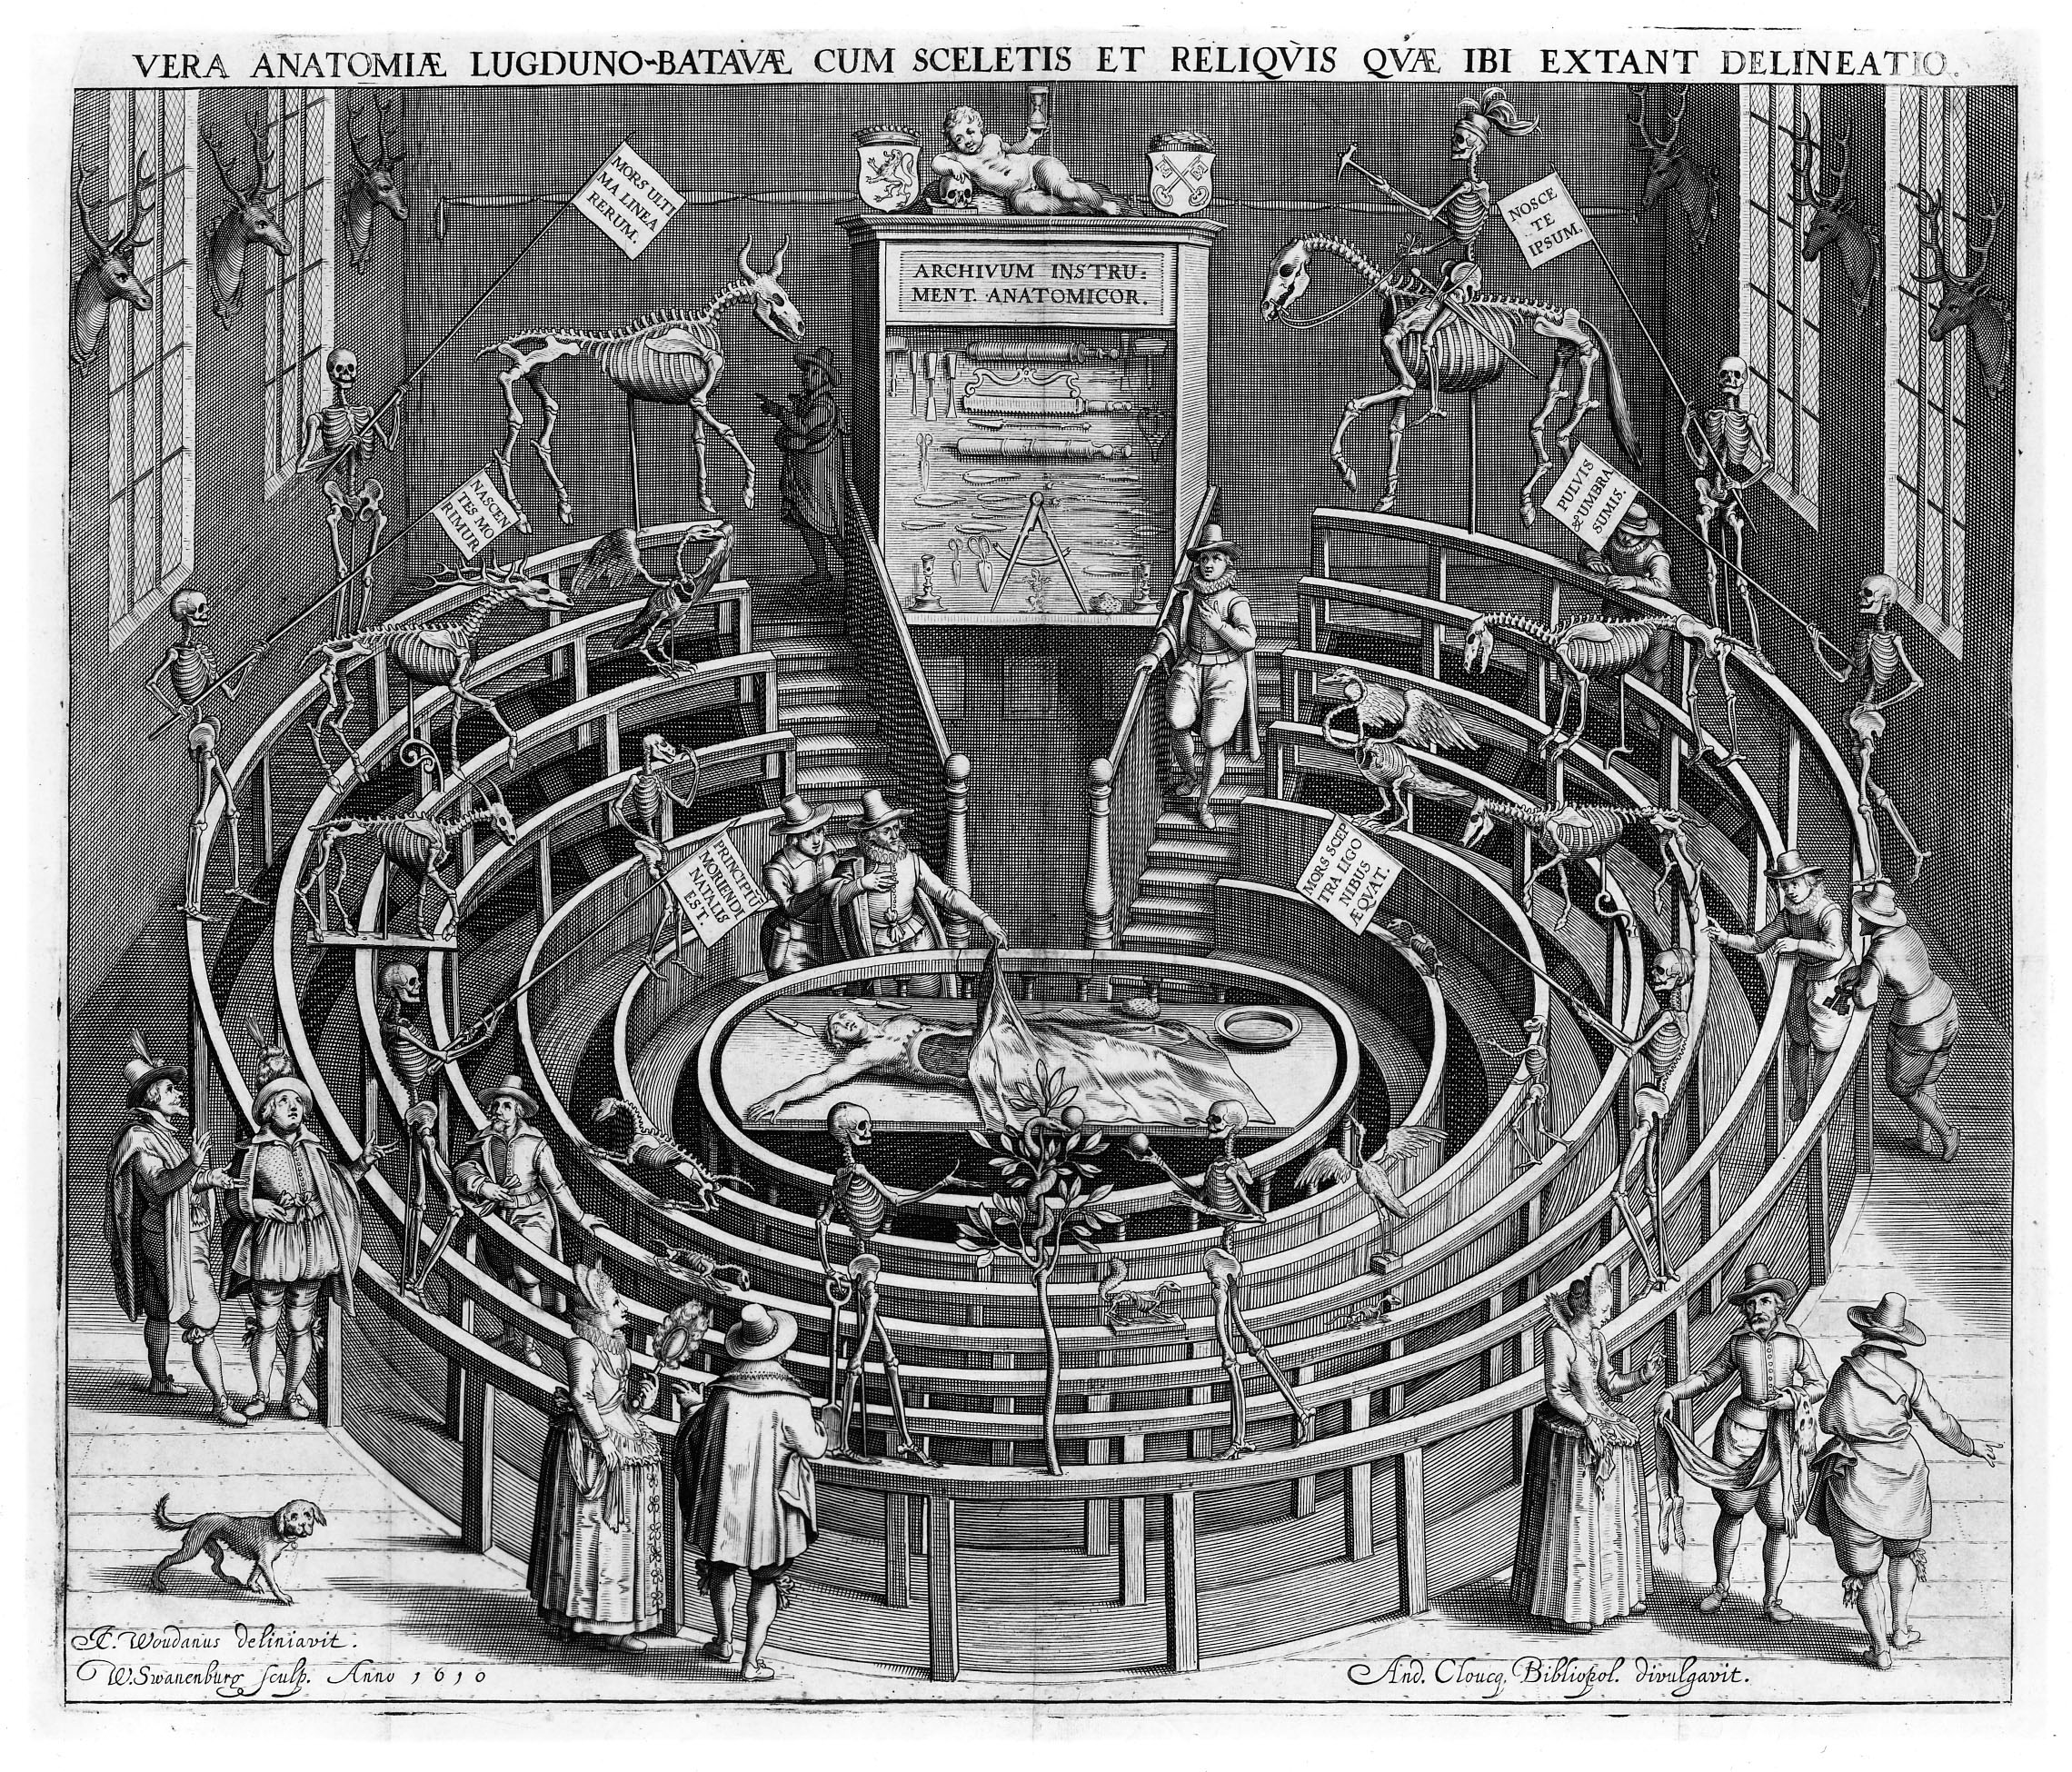 The Anatomy of Art: The History of Anatomy - Anatomical Theatre